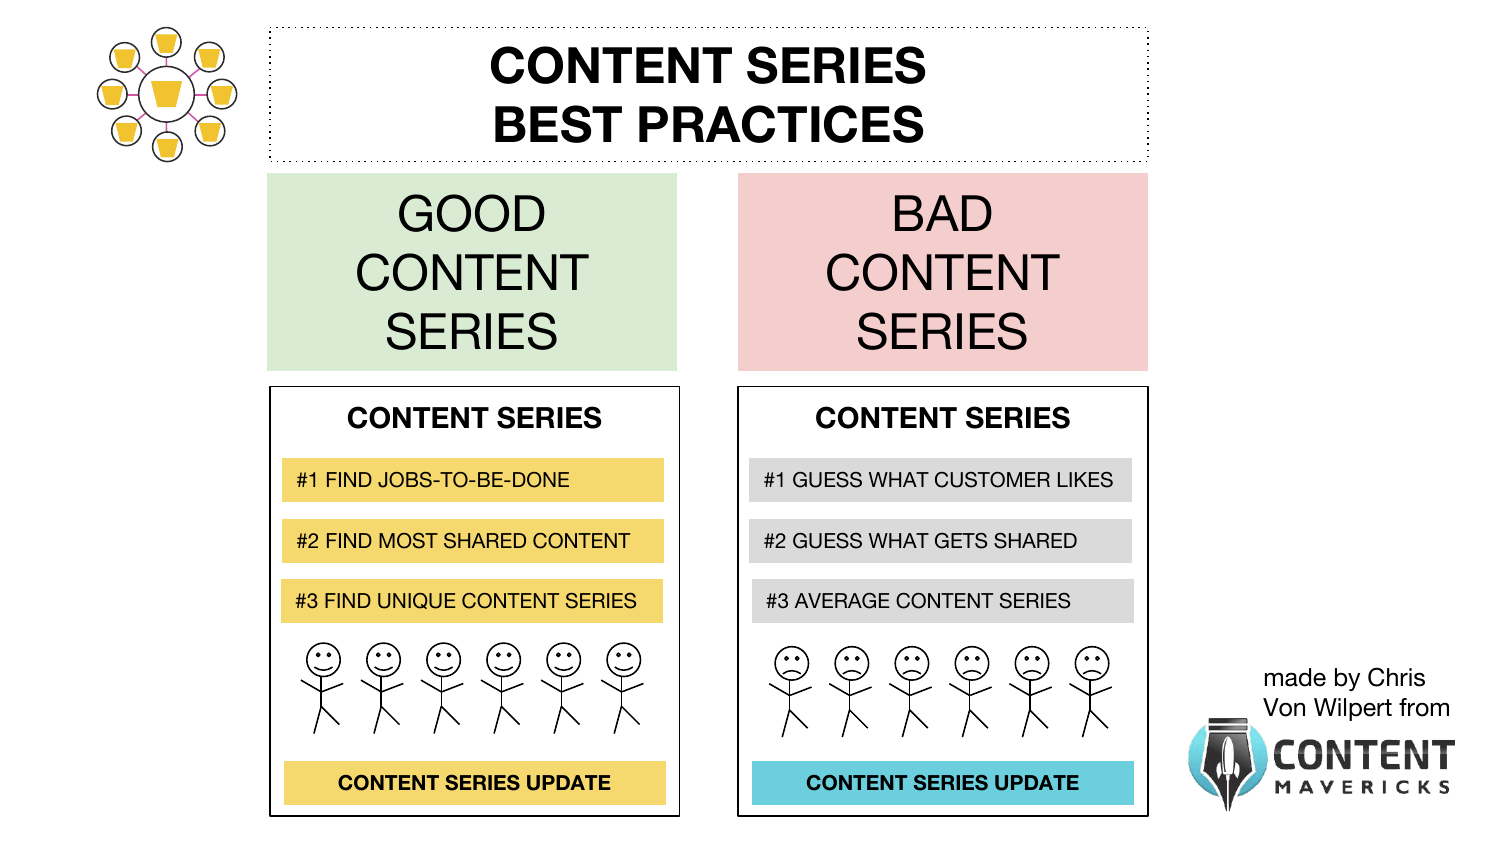 content series content distribution best practices image